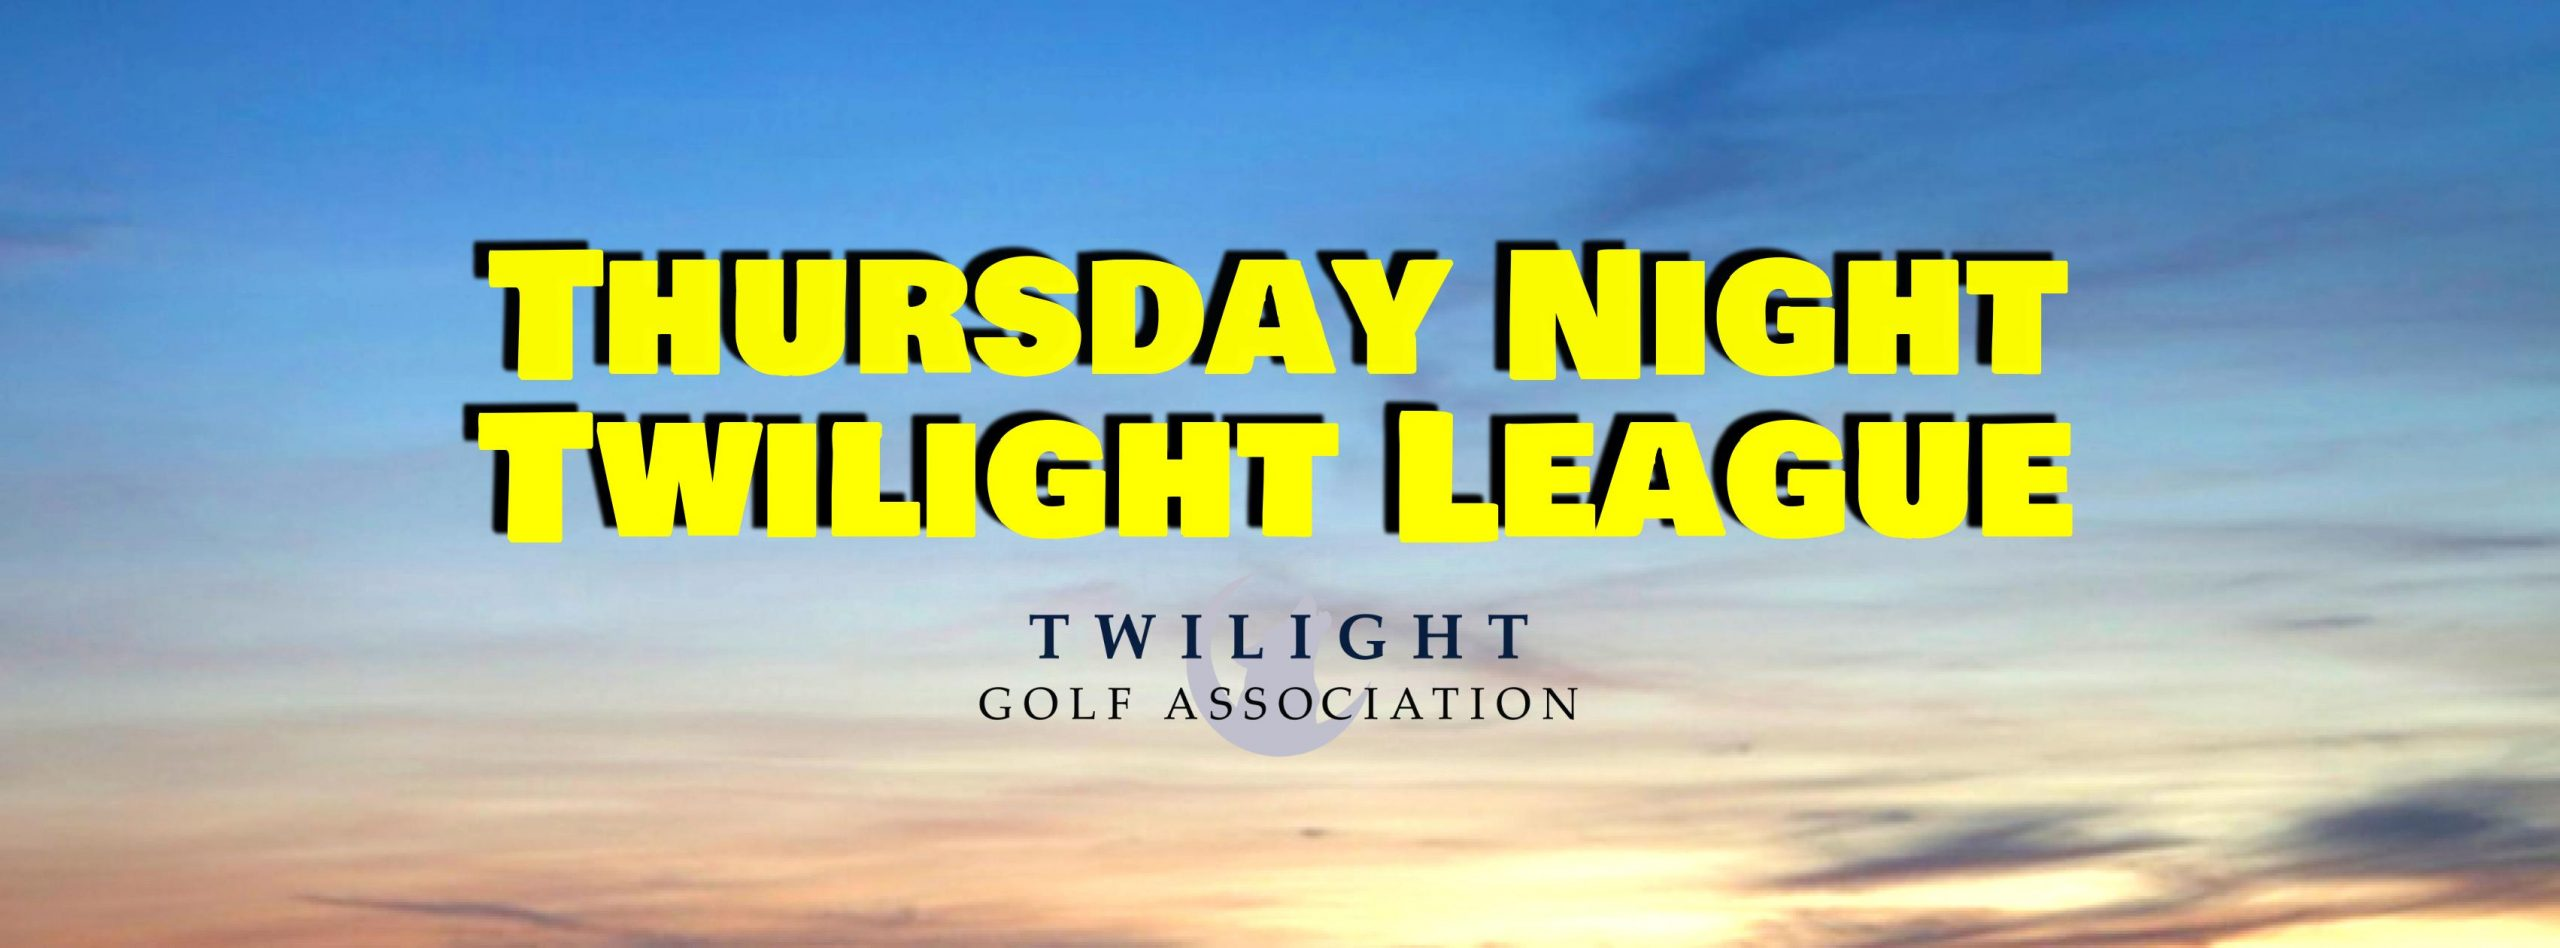 Thursday Night Twilight League at Stonebridge Golf Club